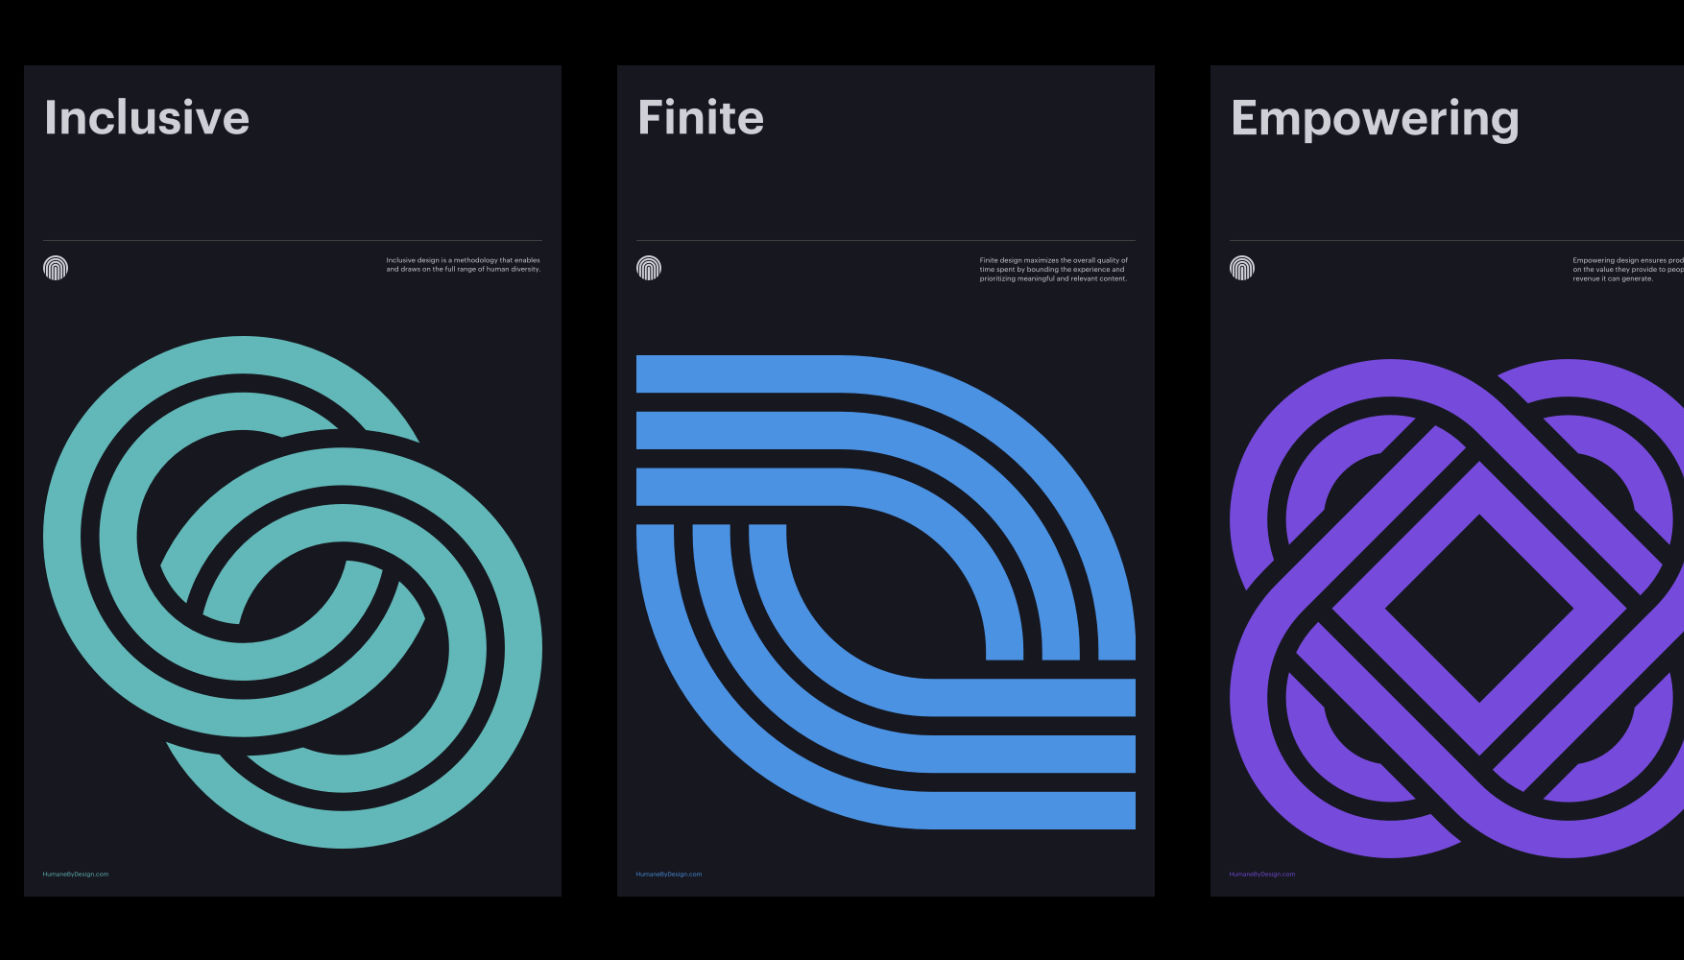 Popular design news of the week: March 23, 2020 - March 29, 2020